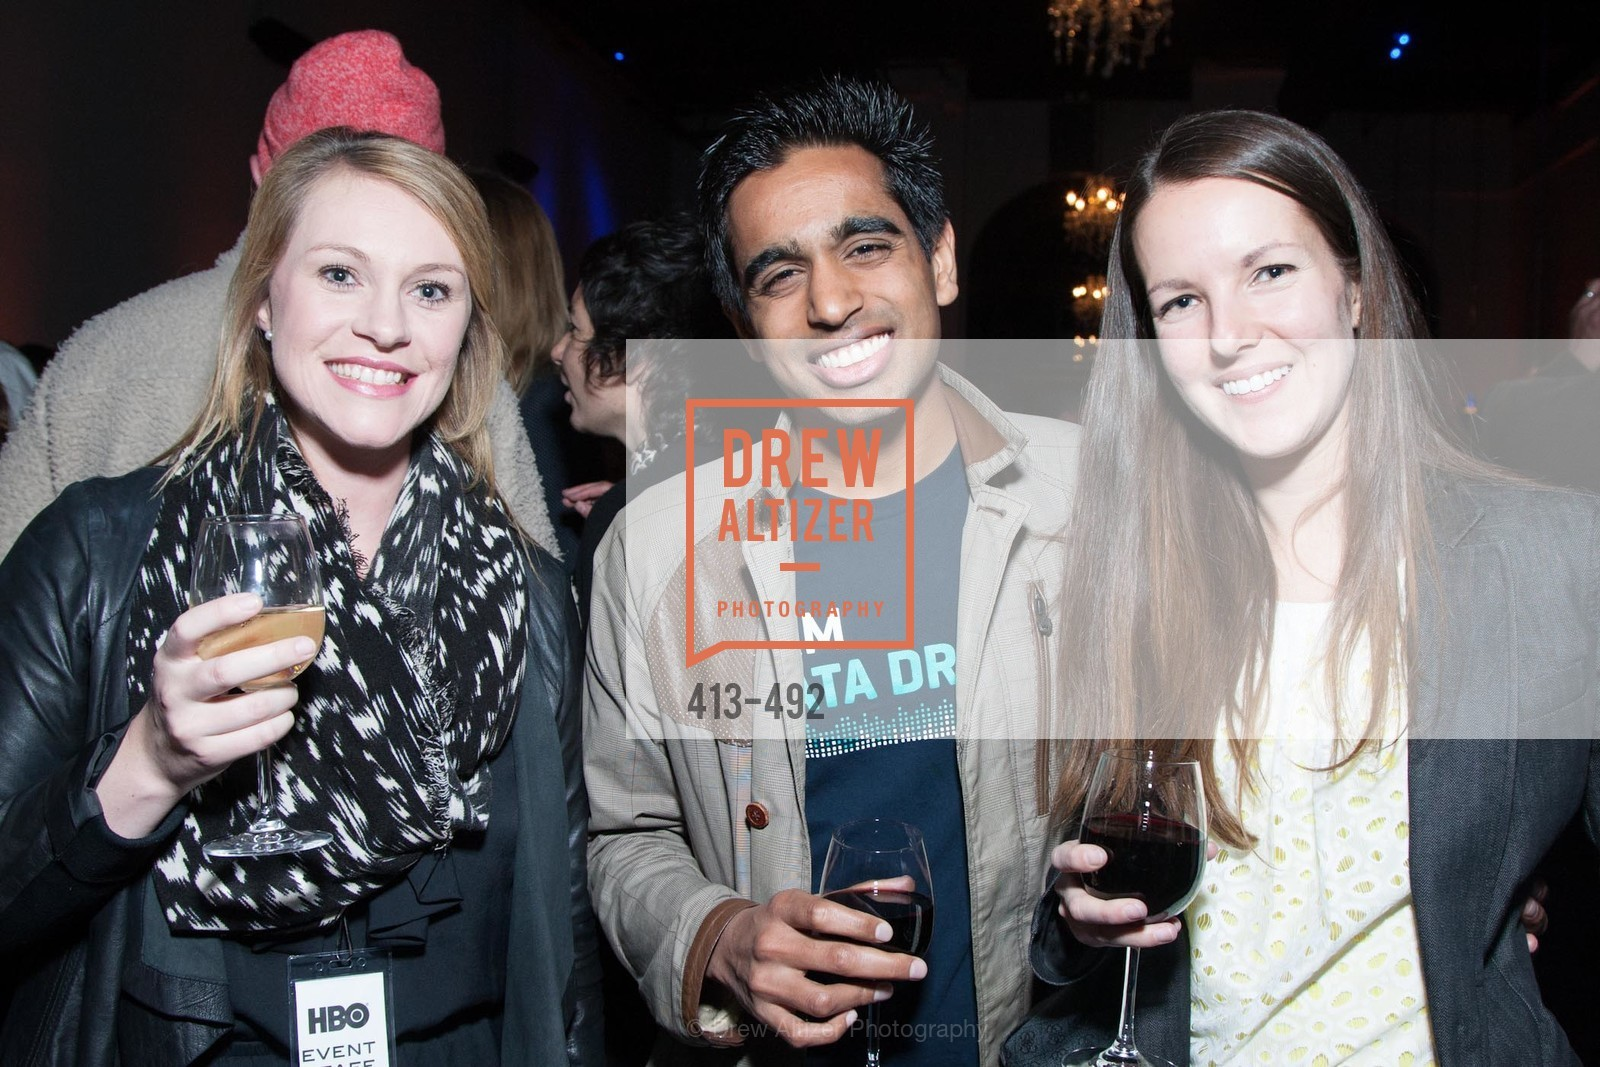 Caitlin Bryand, Suhail Doshi, Laura Sadatt, HBO Original Series 'Silicon Valley' Bay Area Premiere, US. US, April 2nd, 2014,Drew Altizer, Drew Altizer Photography, full-service agency, private events, San Francisco photographer, photographer california